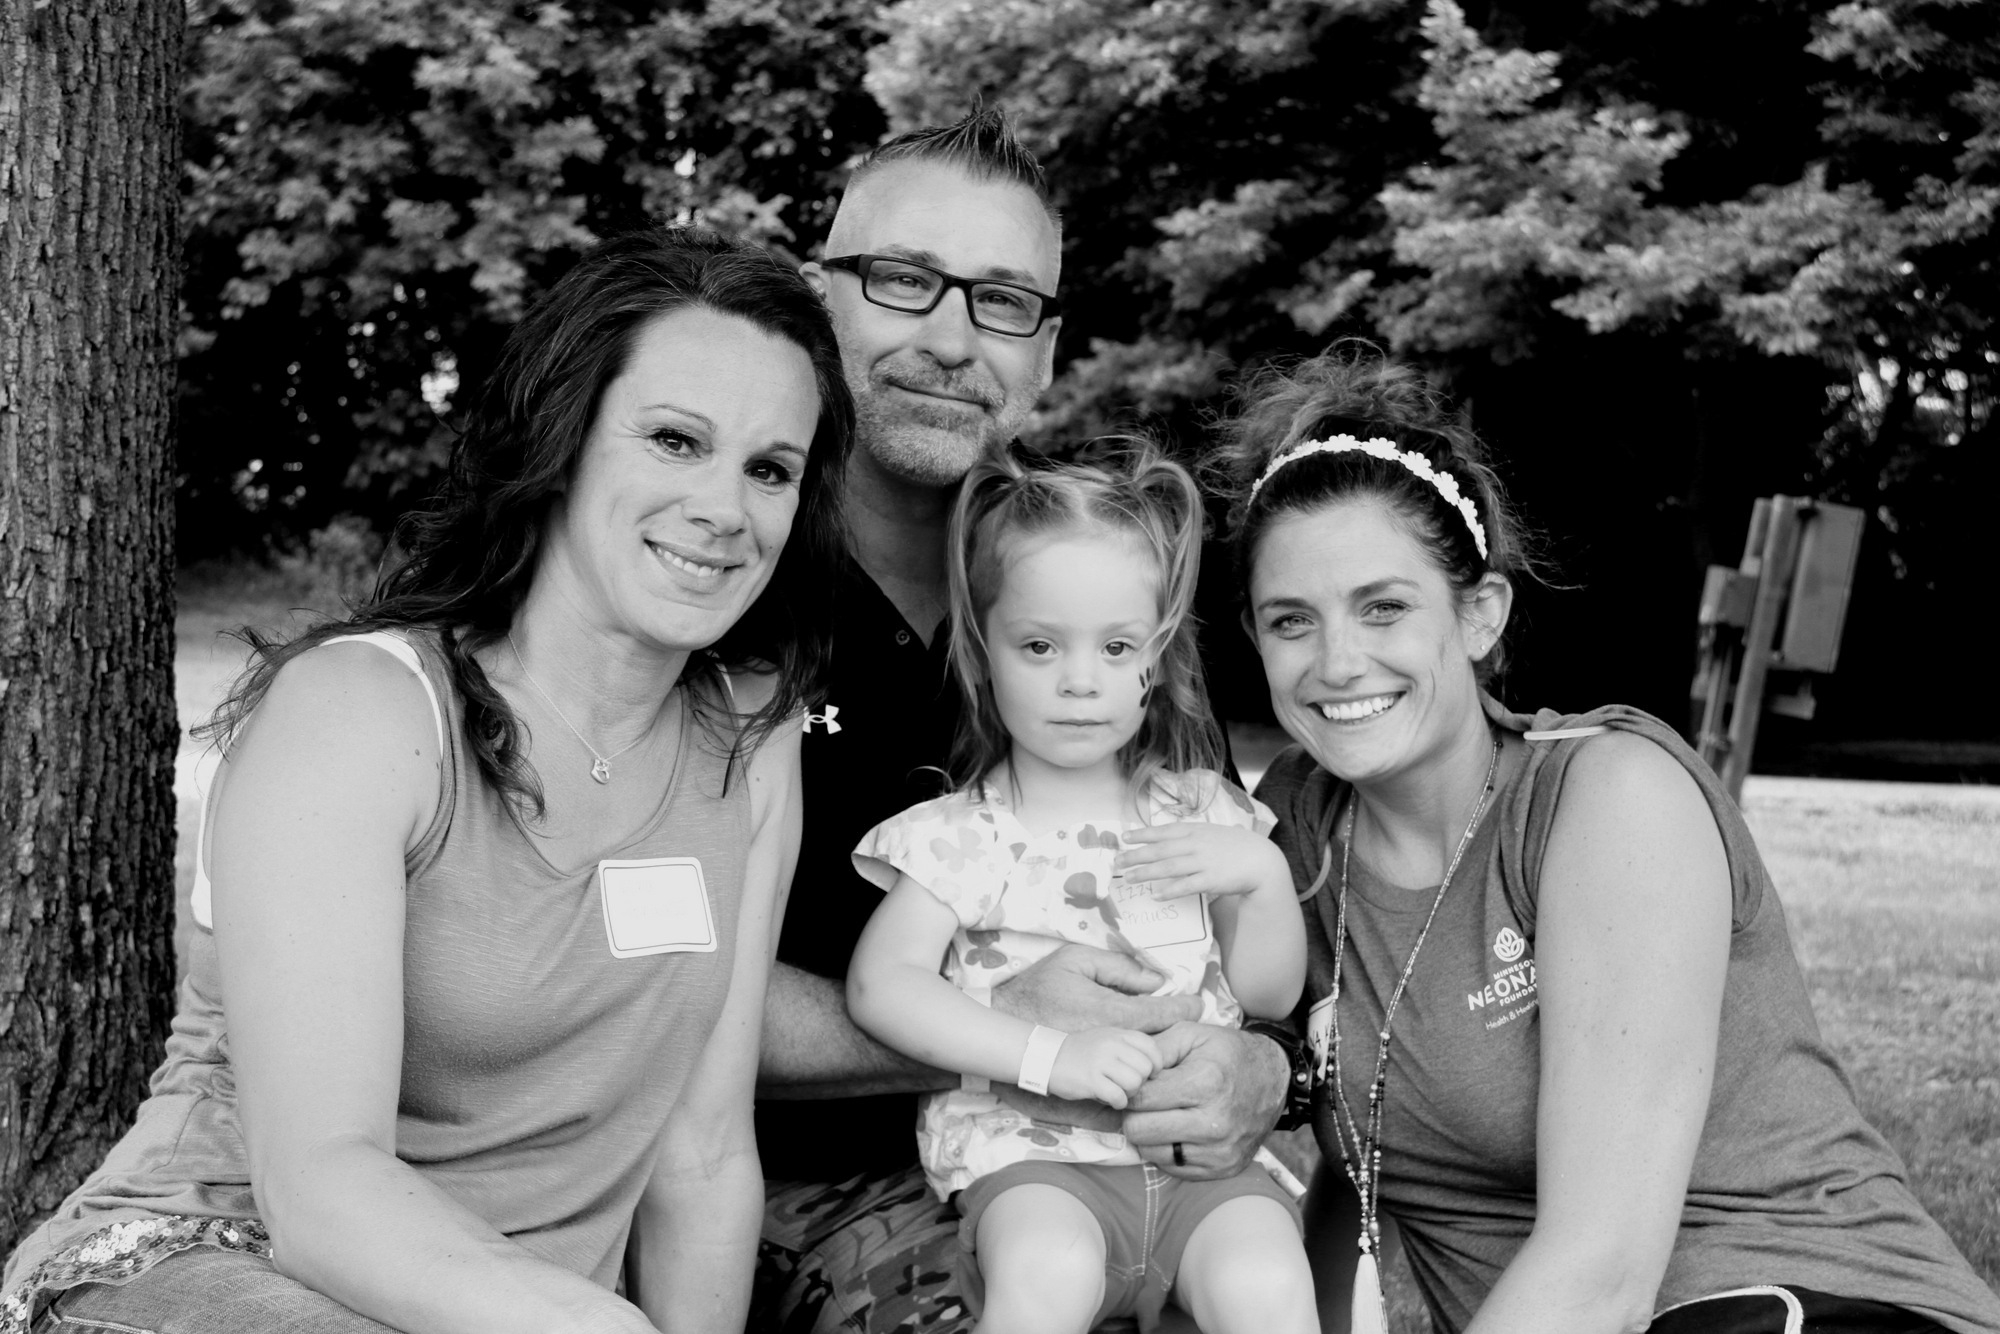 Lora, Mike, Izzy and Nurse Anna. Blessed, indeed.